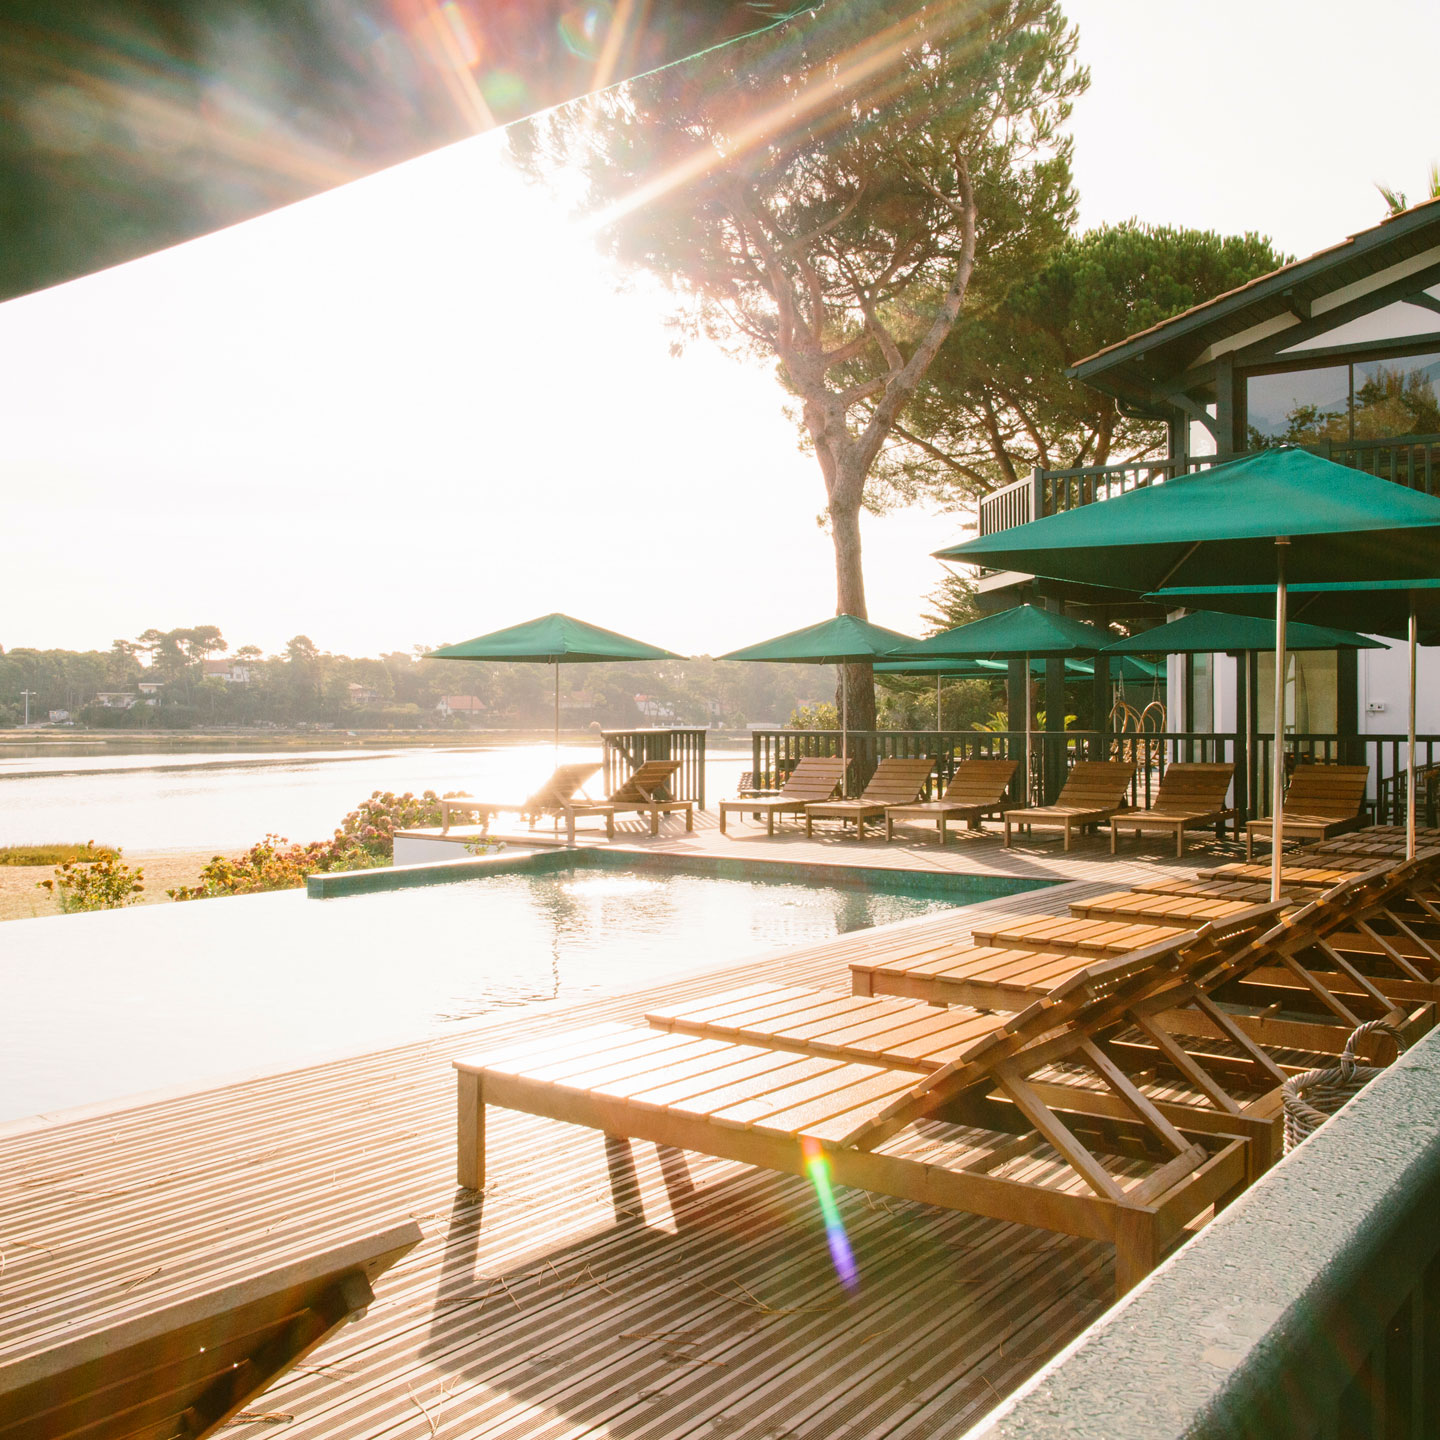 Hotel Les Hortensias du Lac - boutique hotel in Soorts-Hossegor